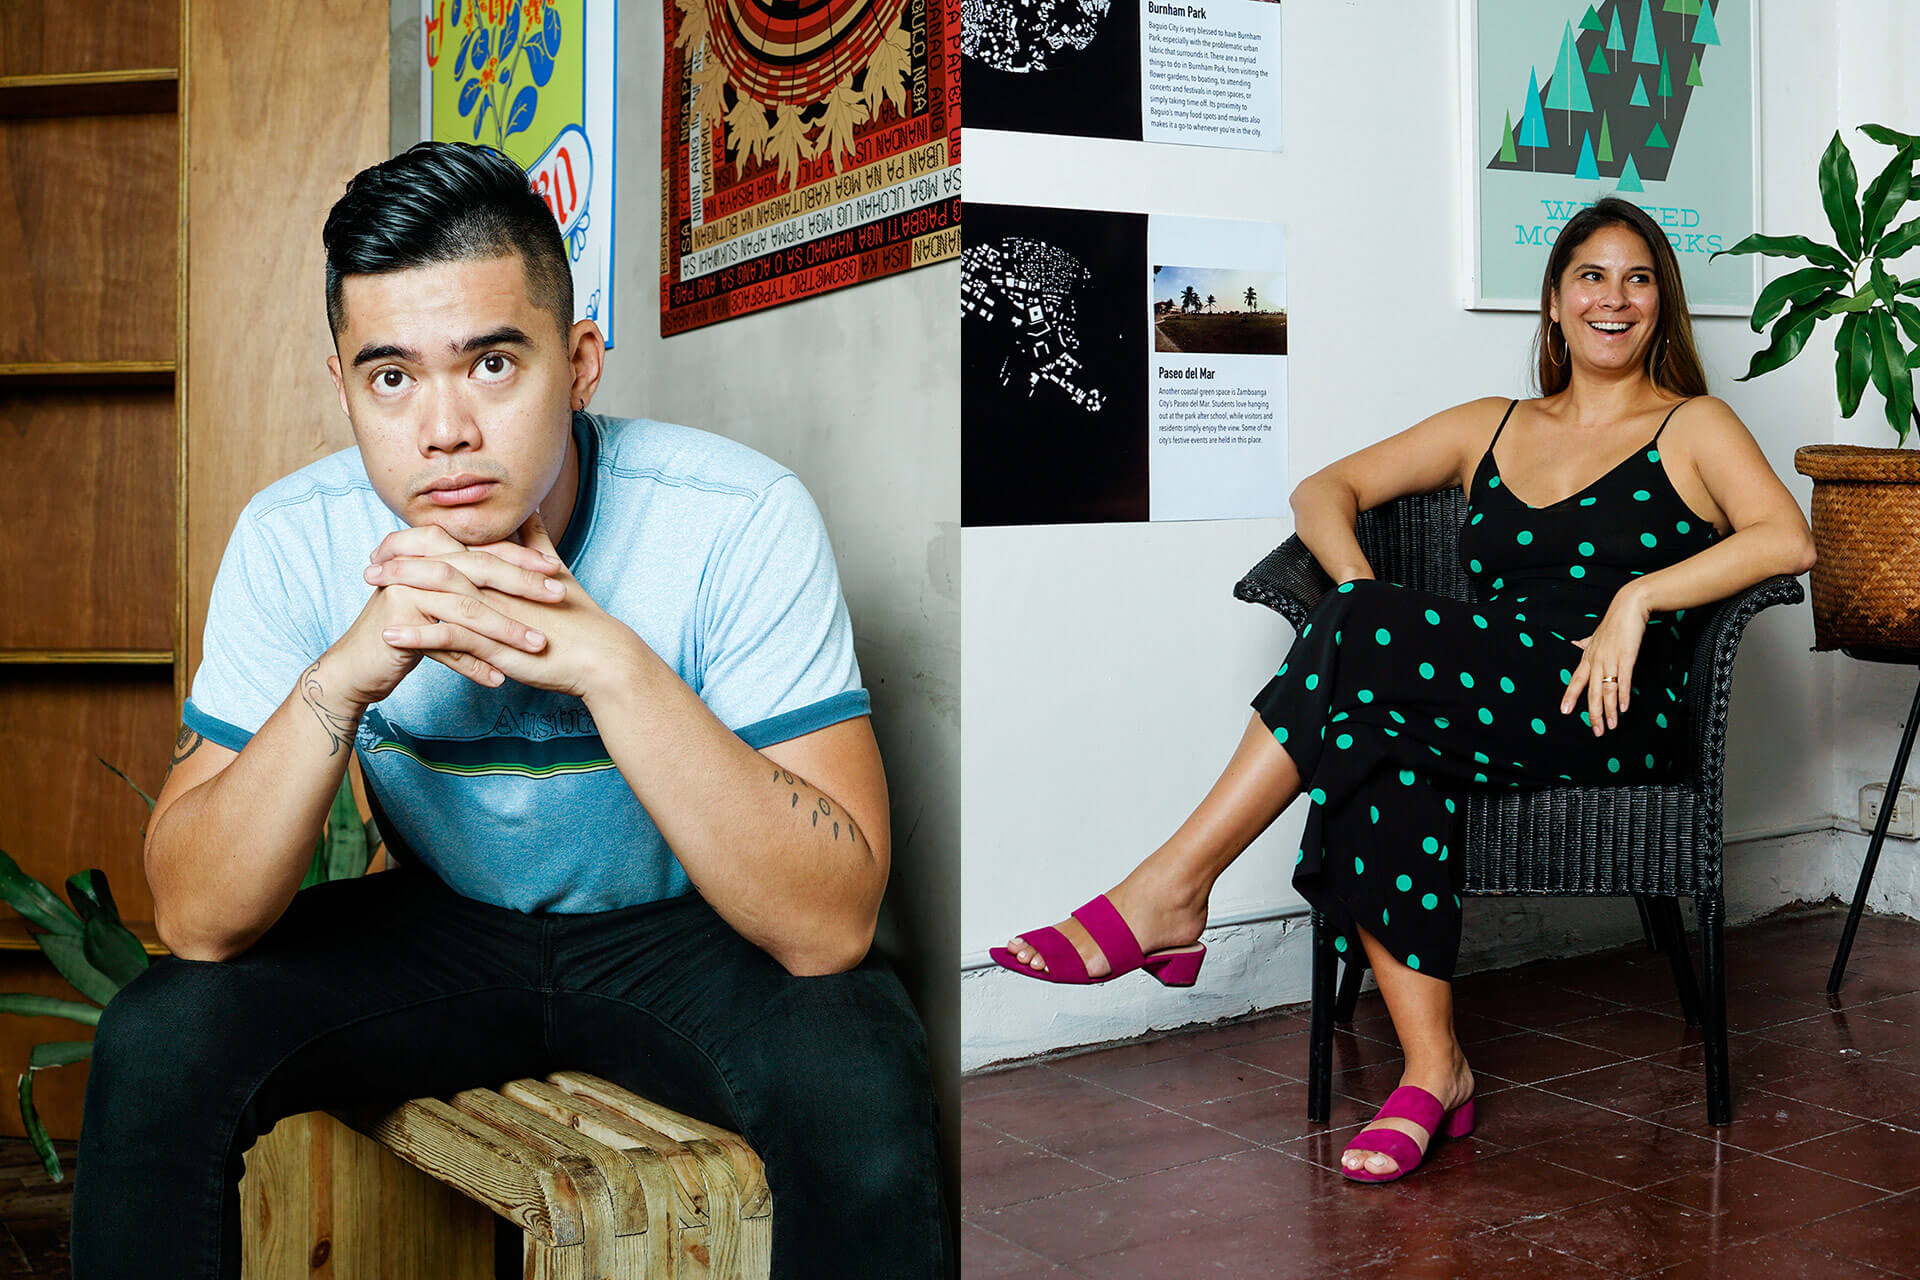 Artist Leeroy New and urban planner Julia Nebrija talk about their newest collaboration, the ongoing fight for public spaces, and the growing importance of public art.